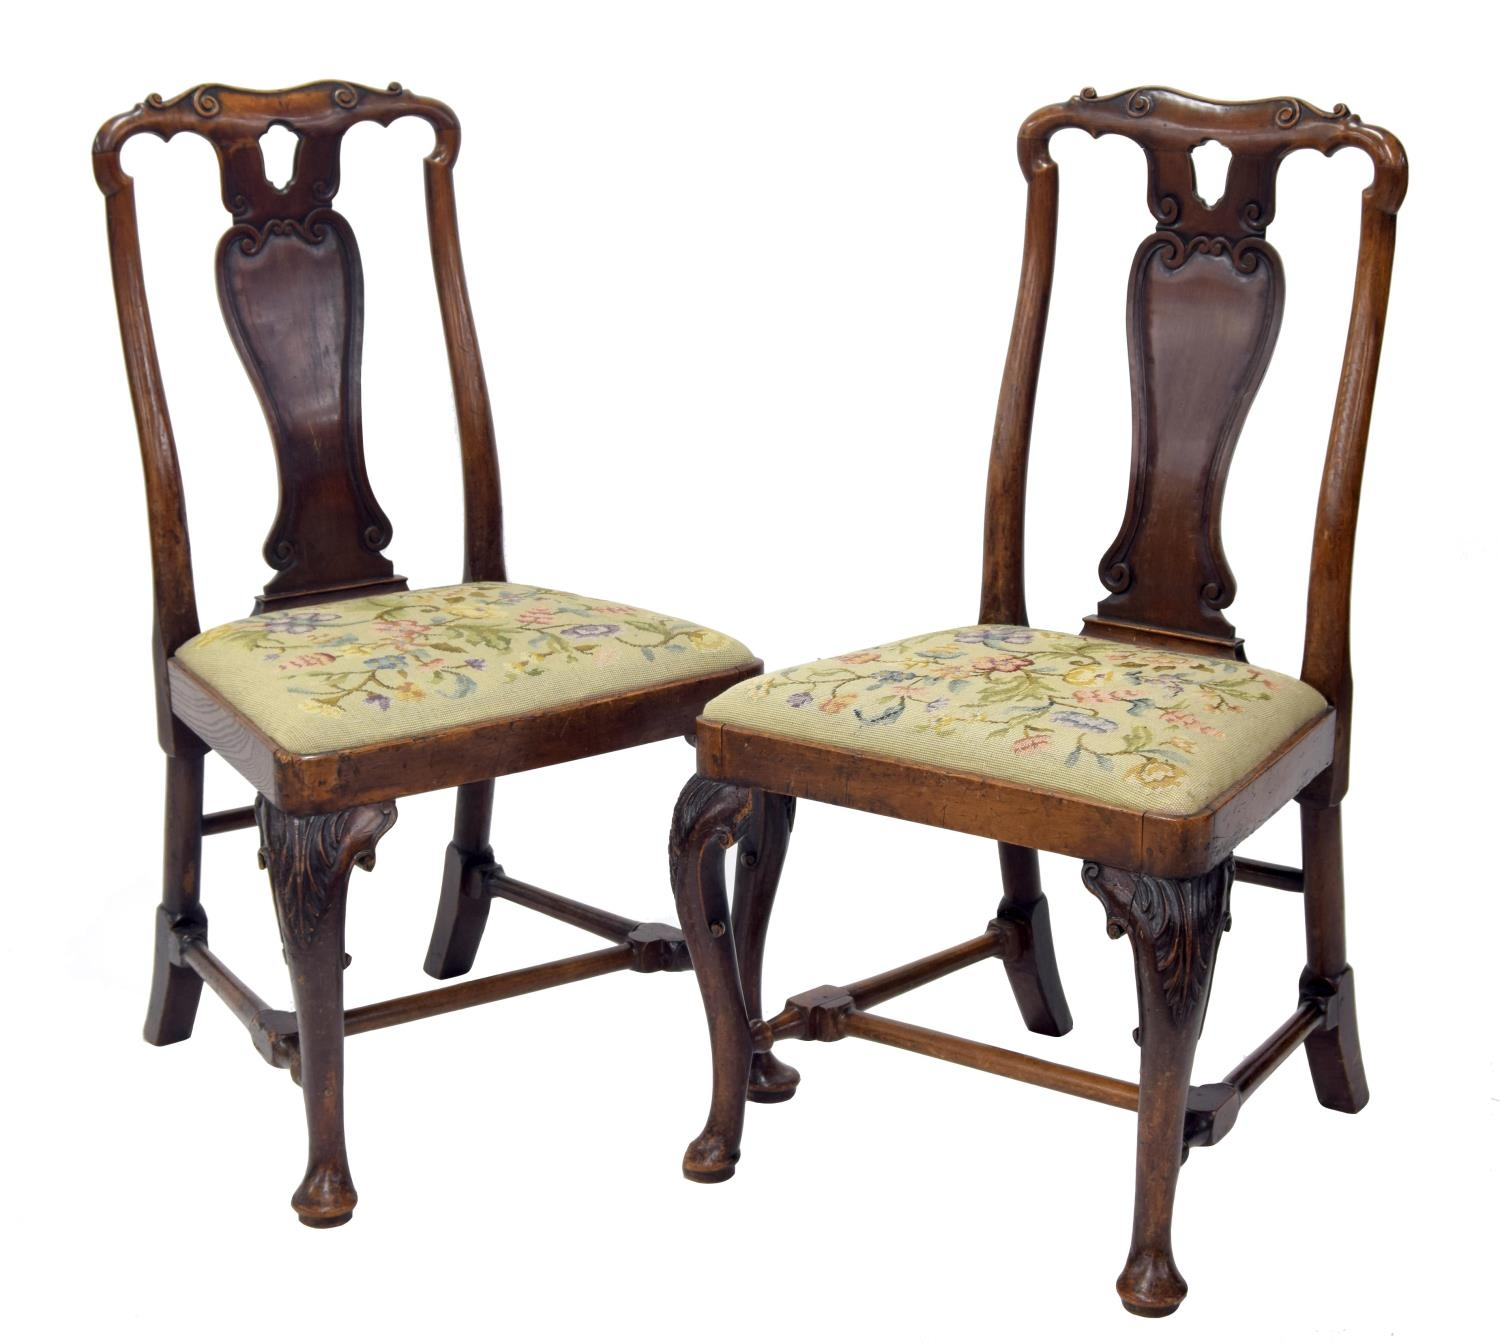 Good pair of early 18th century cherry side chairs of Chinese influence, eachwith curved vase